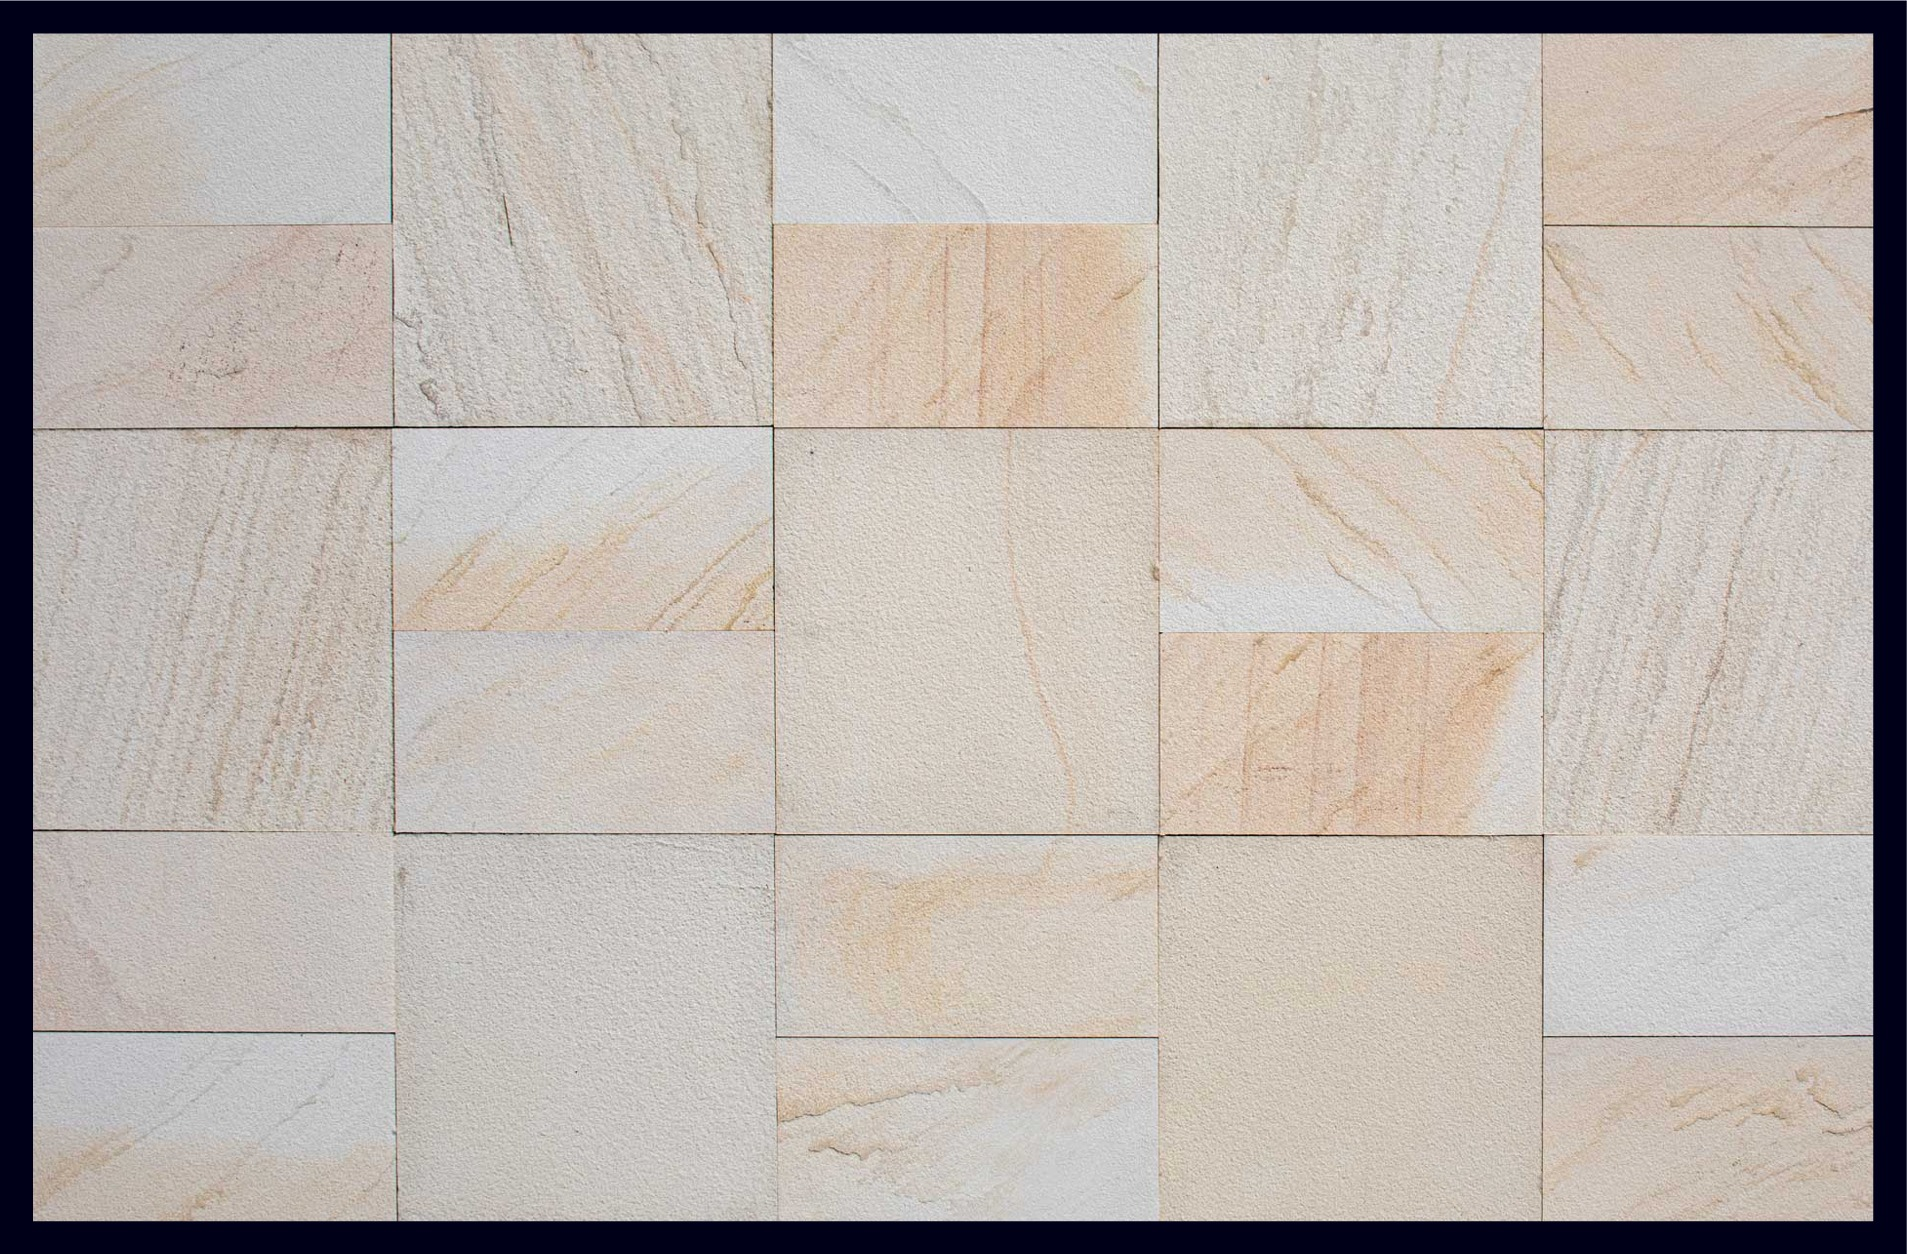 KINGS POINt TEXTURED - (SANDSTONE)VIEW IN GALLERY